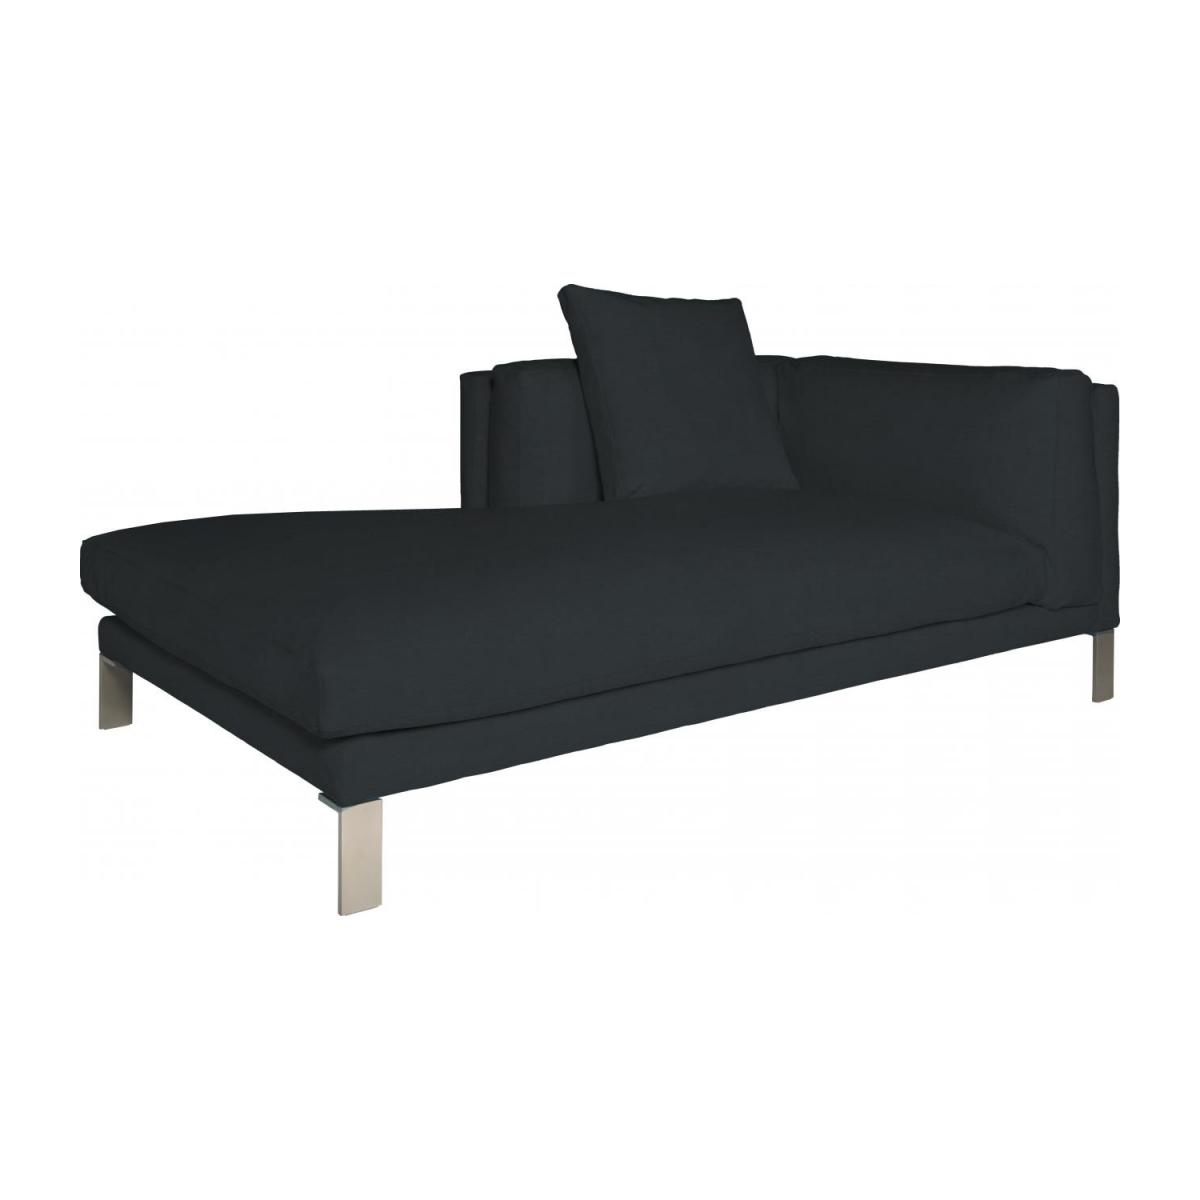 Leather left-arm chaise longue n°1